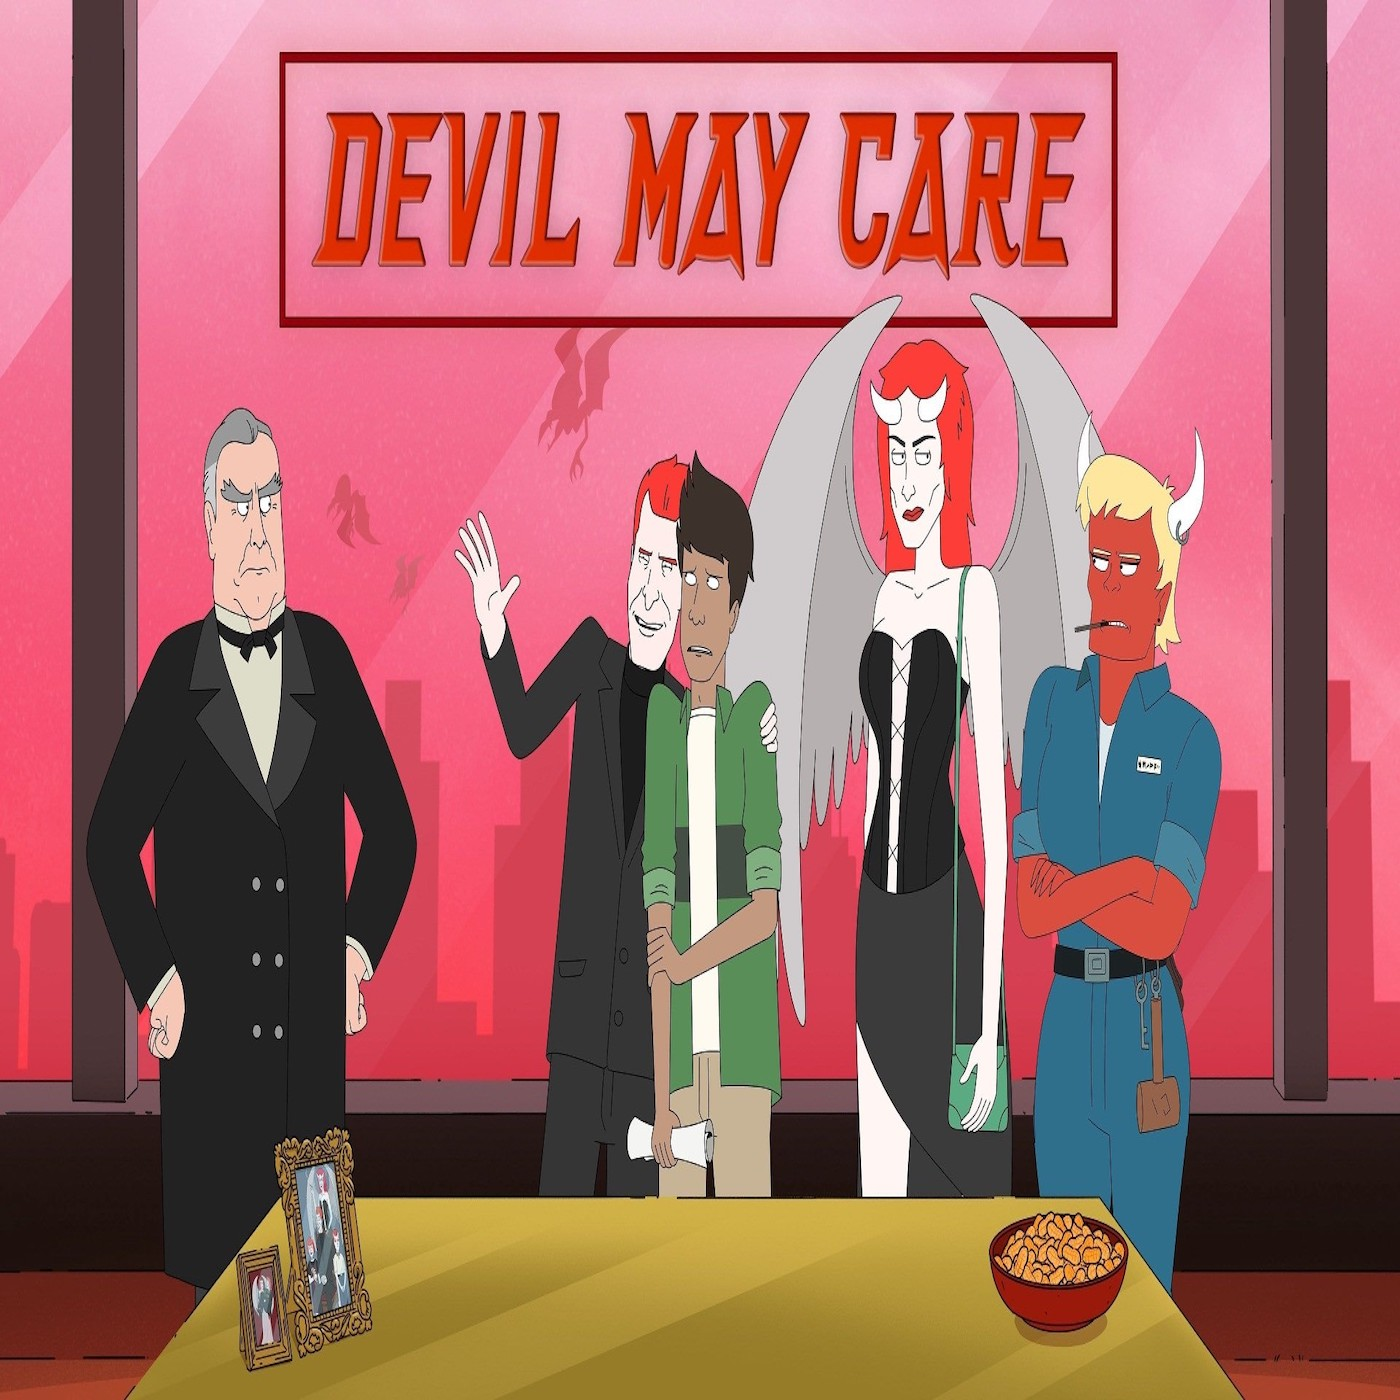 Douglas Goldstein, creator of Devil May Care